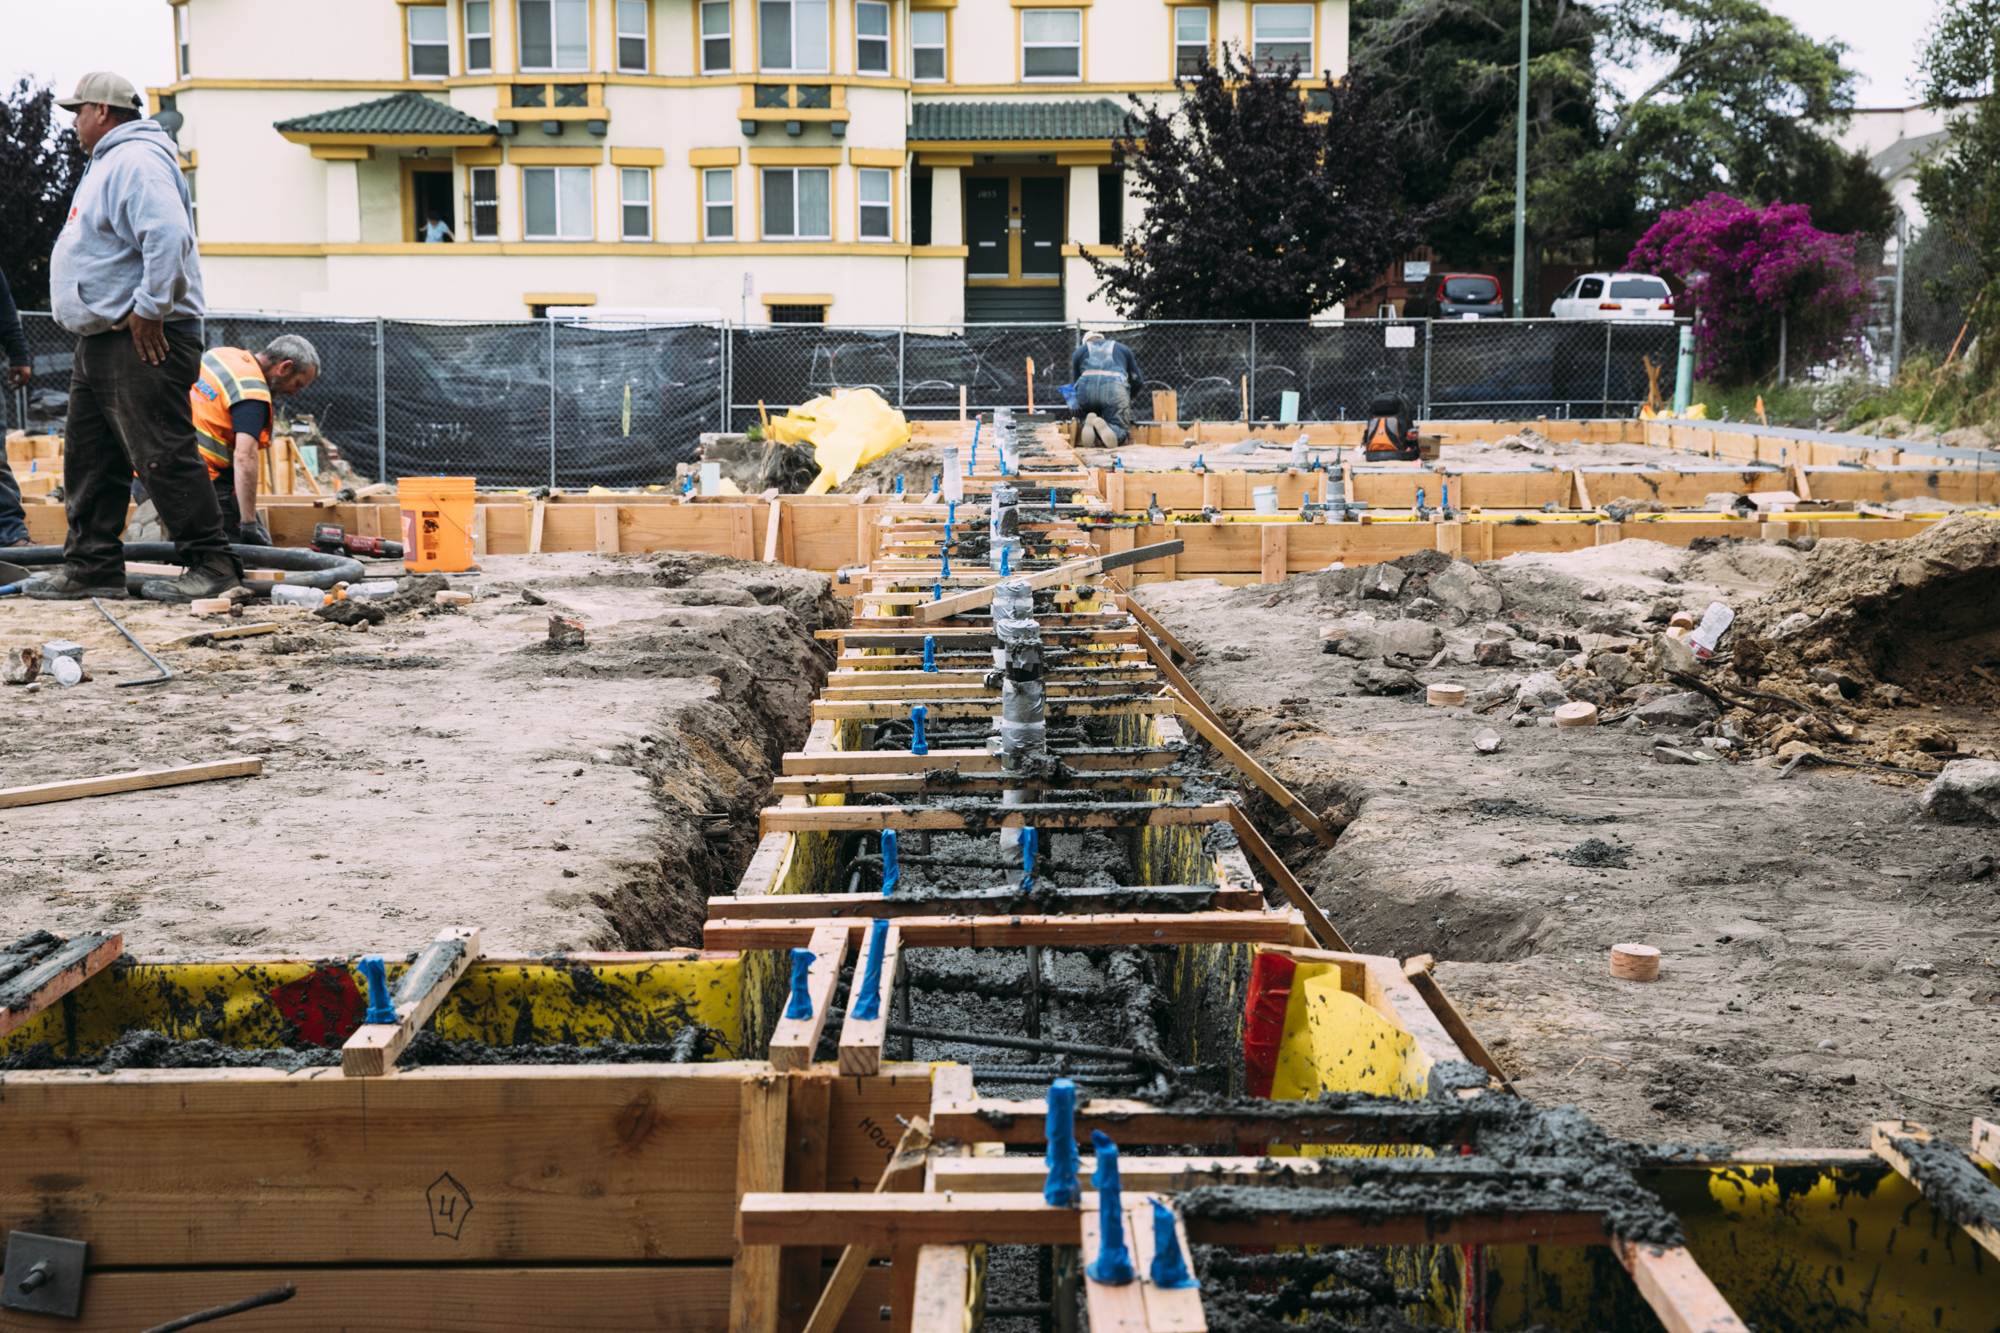 061019-00314_18thLinden_Construction.jpg